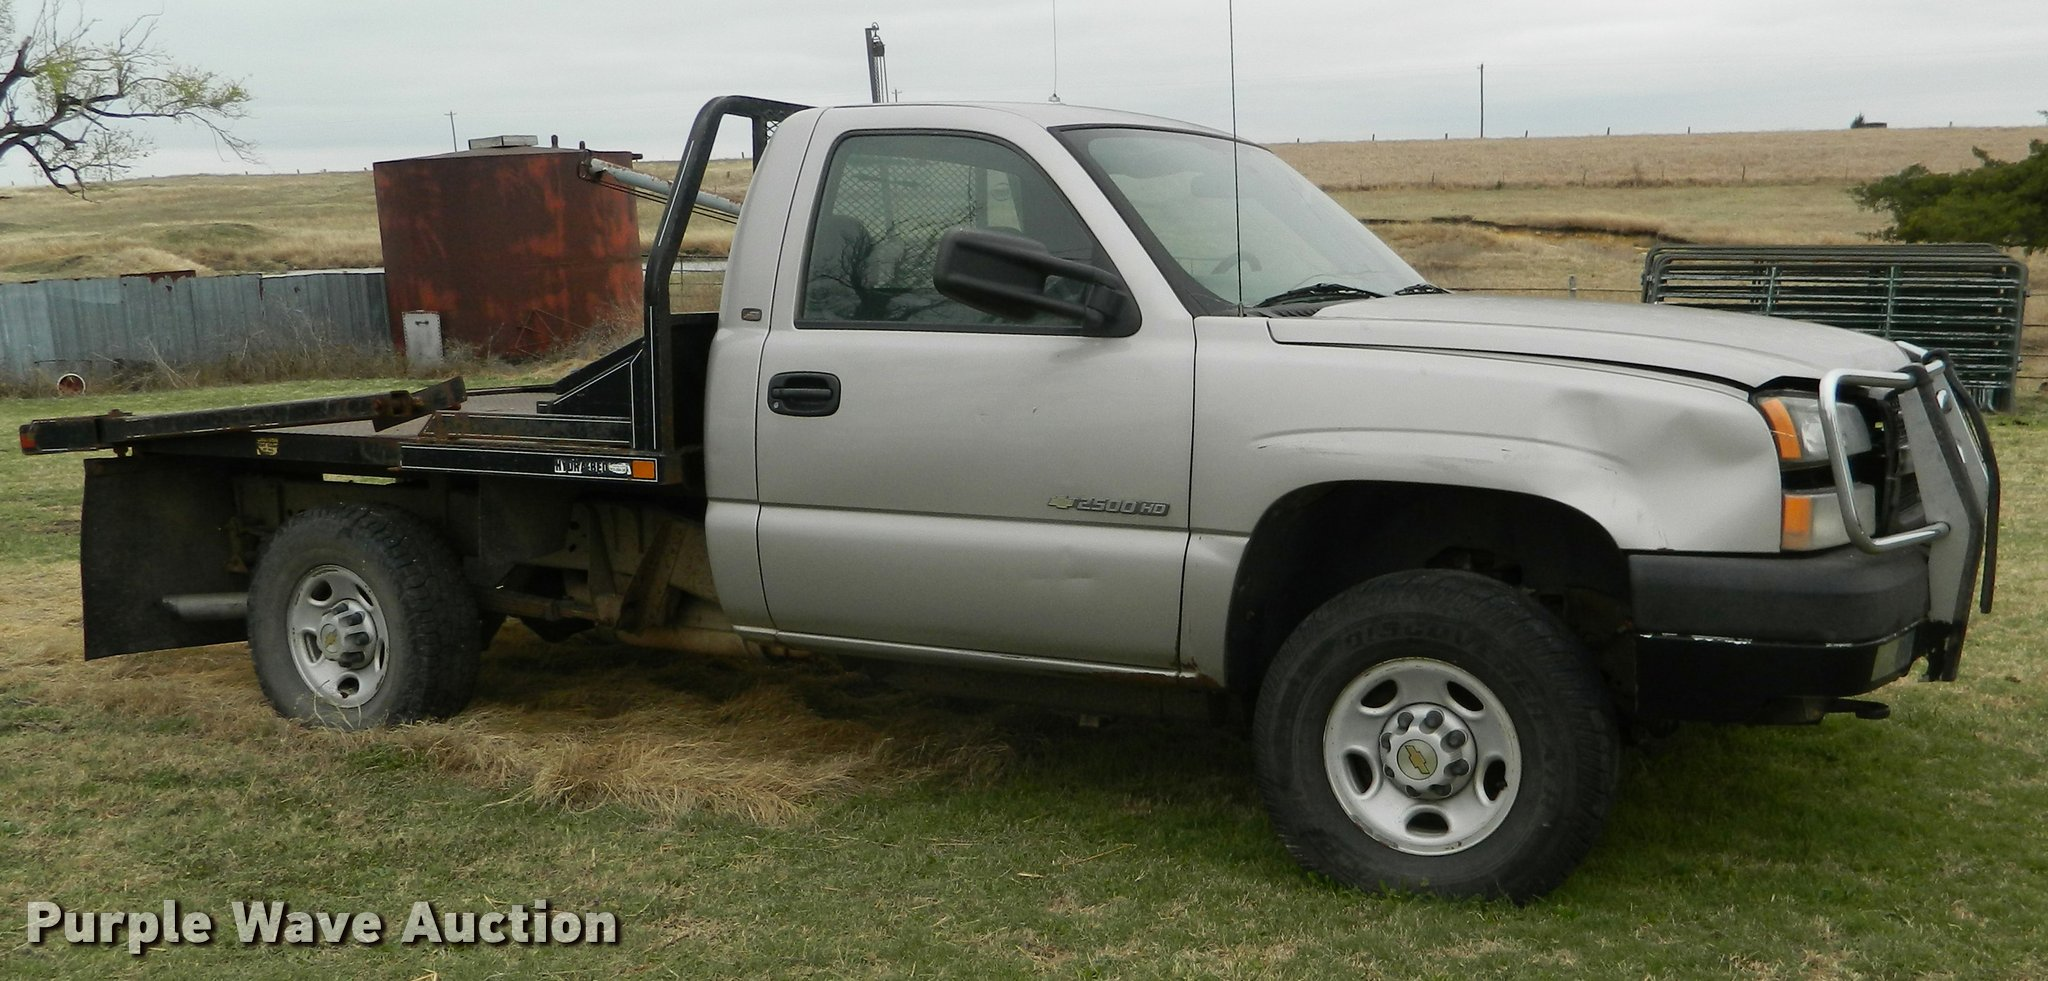 2004 Chevrolet Silverado 2500hd Flatbed Pickup Truck In Hoisington Ks Item K2591 Sold Purple Wave